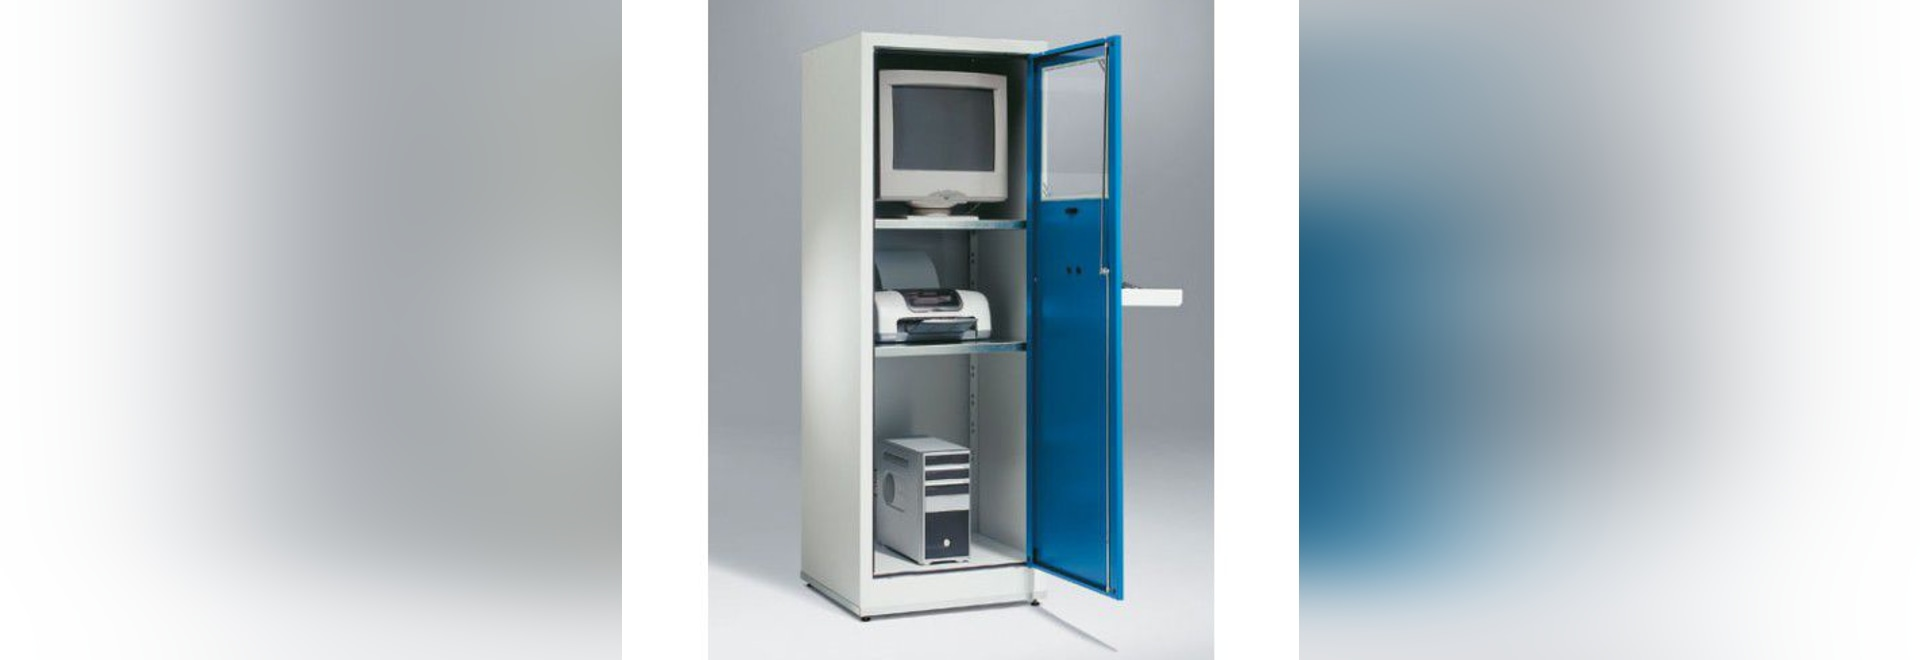 NEU: PC-Schrank by SCHÄFER Container Systems - SCHÄFER Container Systems